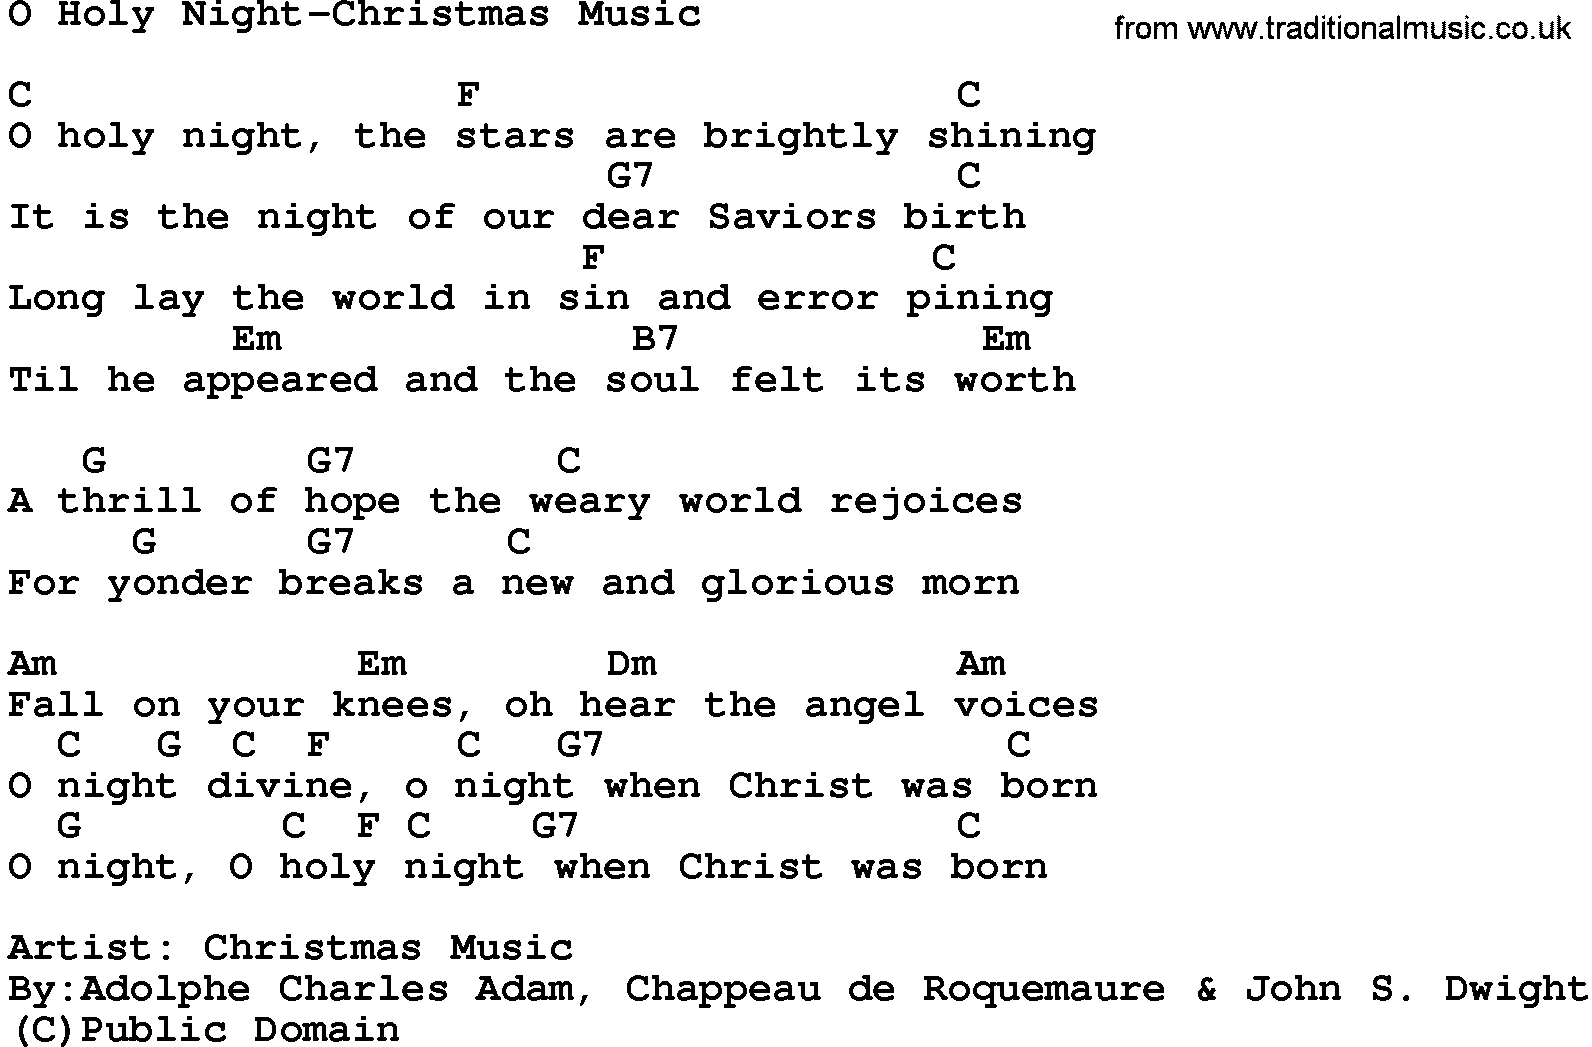 Song: O Holy Night-Christmas Music, lyrics and chords.